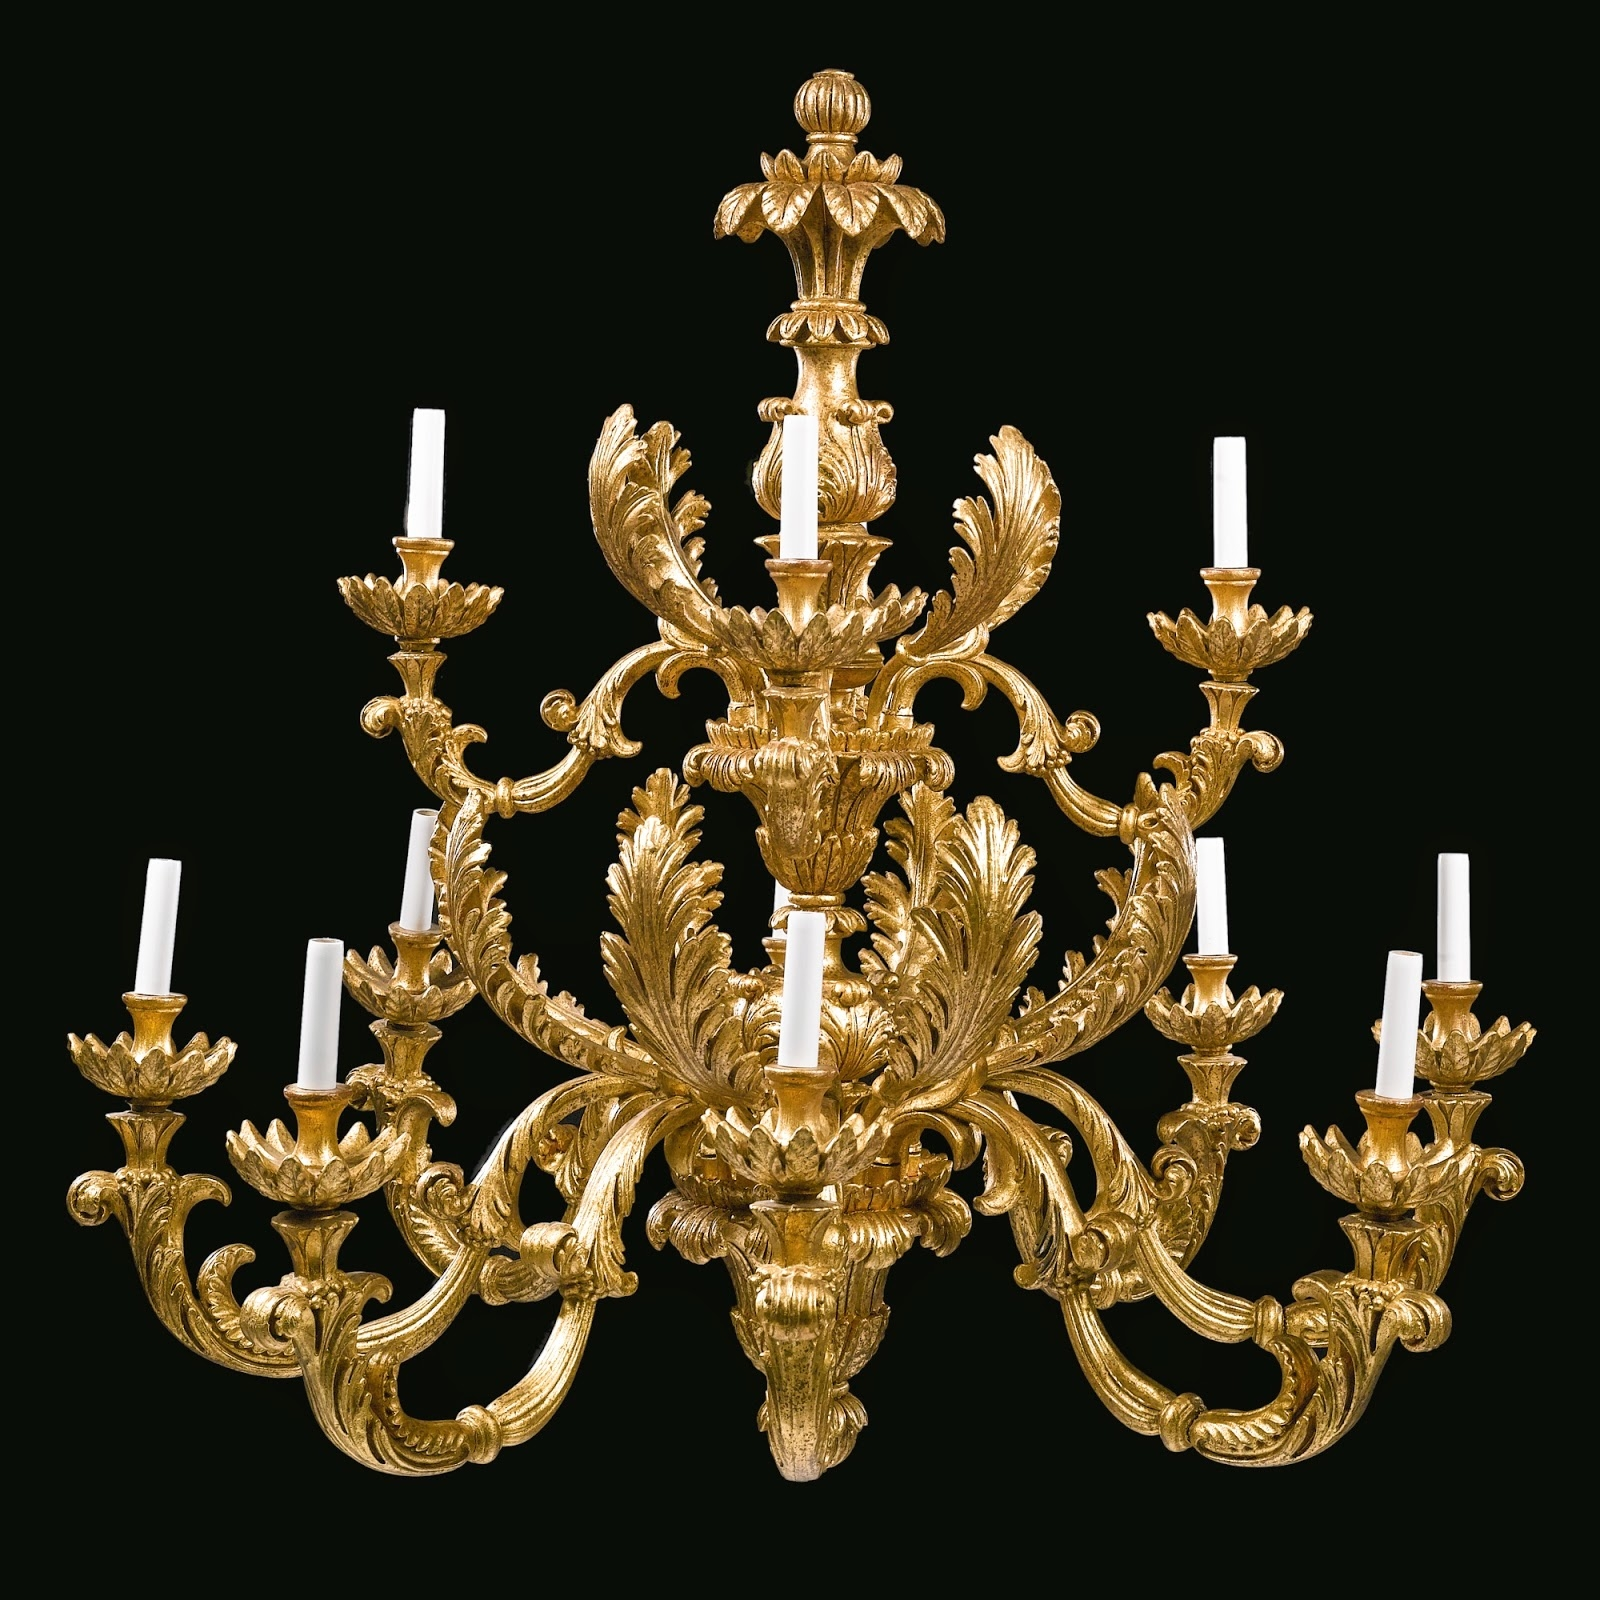 Spencer Alley Giltwood Pairs In Baroque Chandelier (Image 14 of 15)